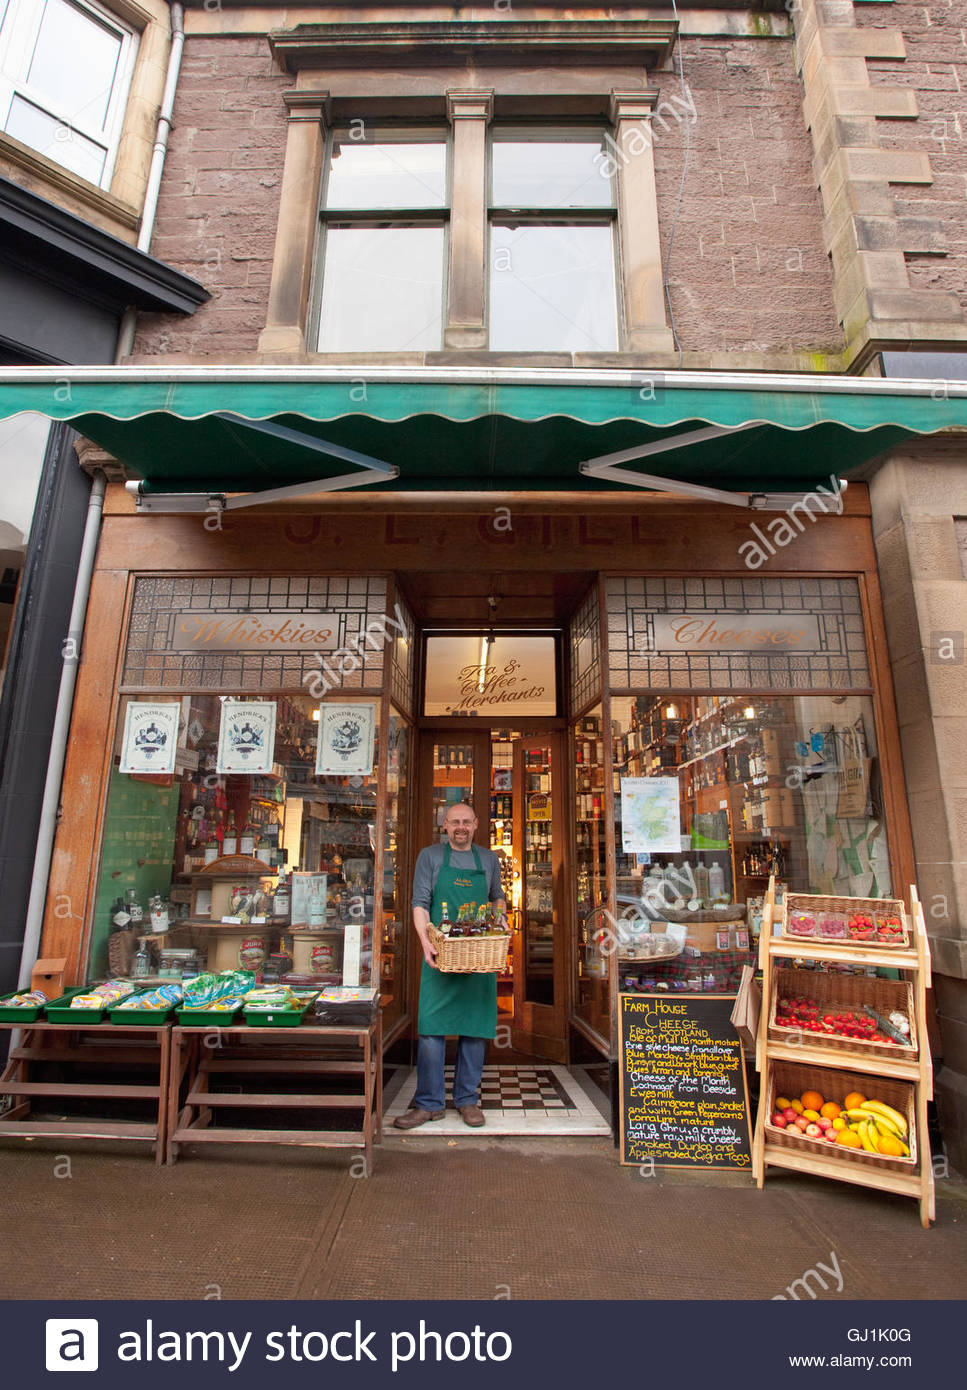 The shopkeeper poses for a photograph at J. L. Gill's speciality food shop, Crieff, Perthshire, Scotland. - Stock Image